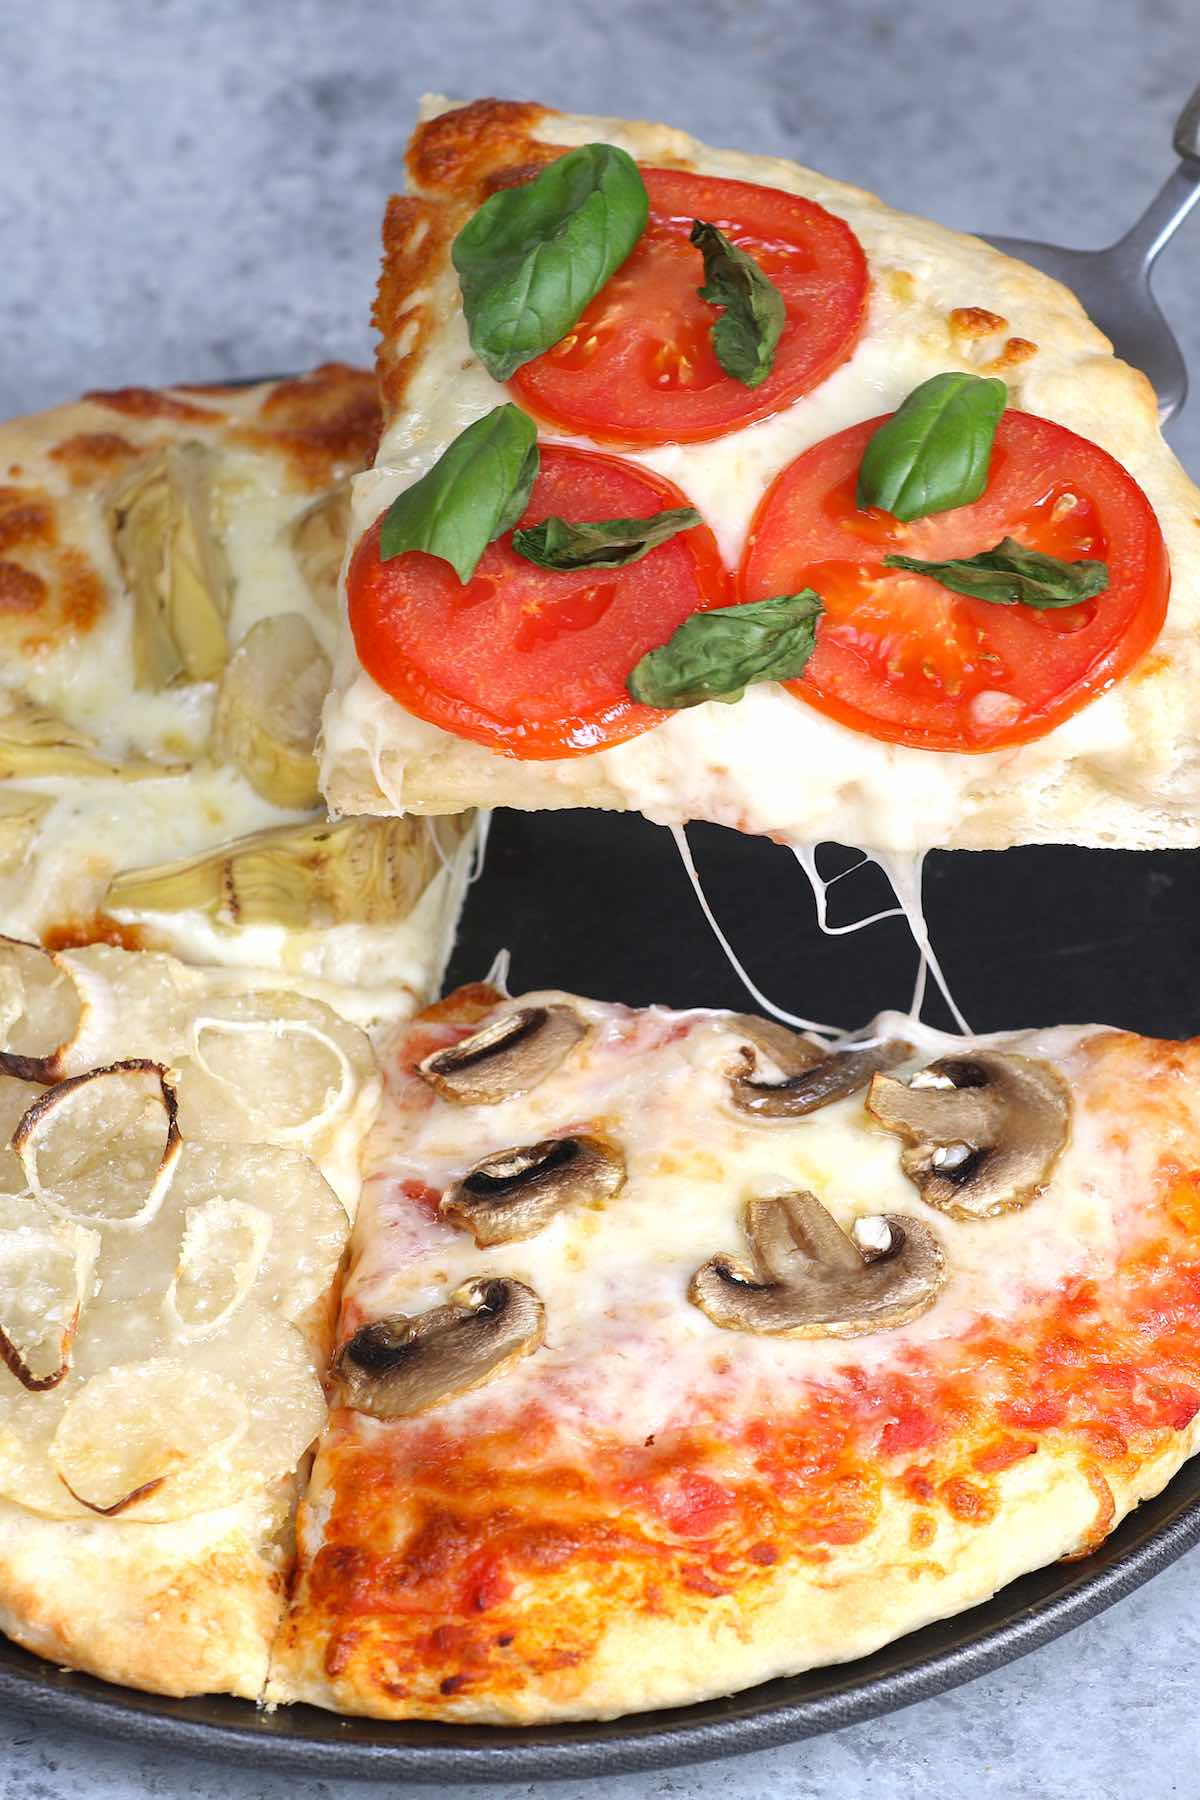 Four Seasons Pizza is divided into sections with different toppings representing the four seasons. This classic Italian recipe starts with homemade pizza dough and fresh ingredients for the best flavor. It's so much fun to make and eat!